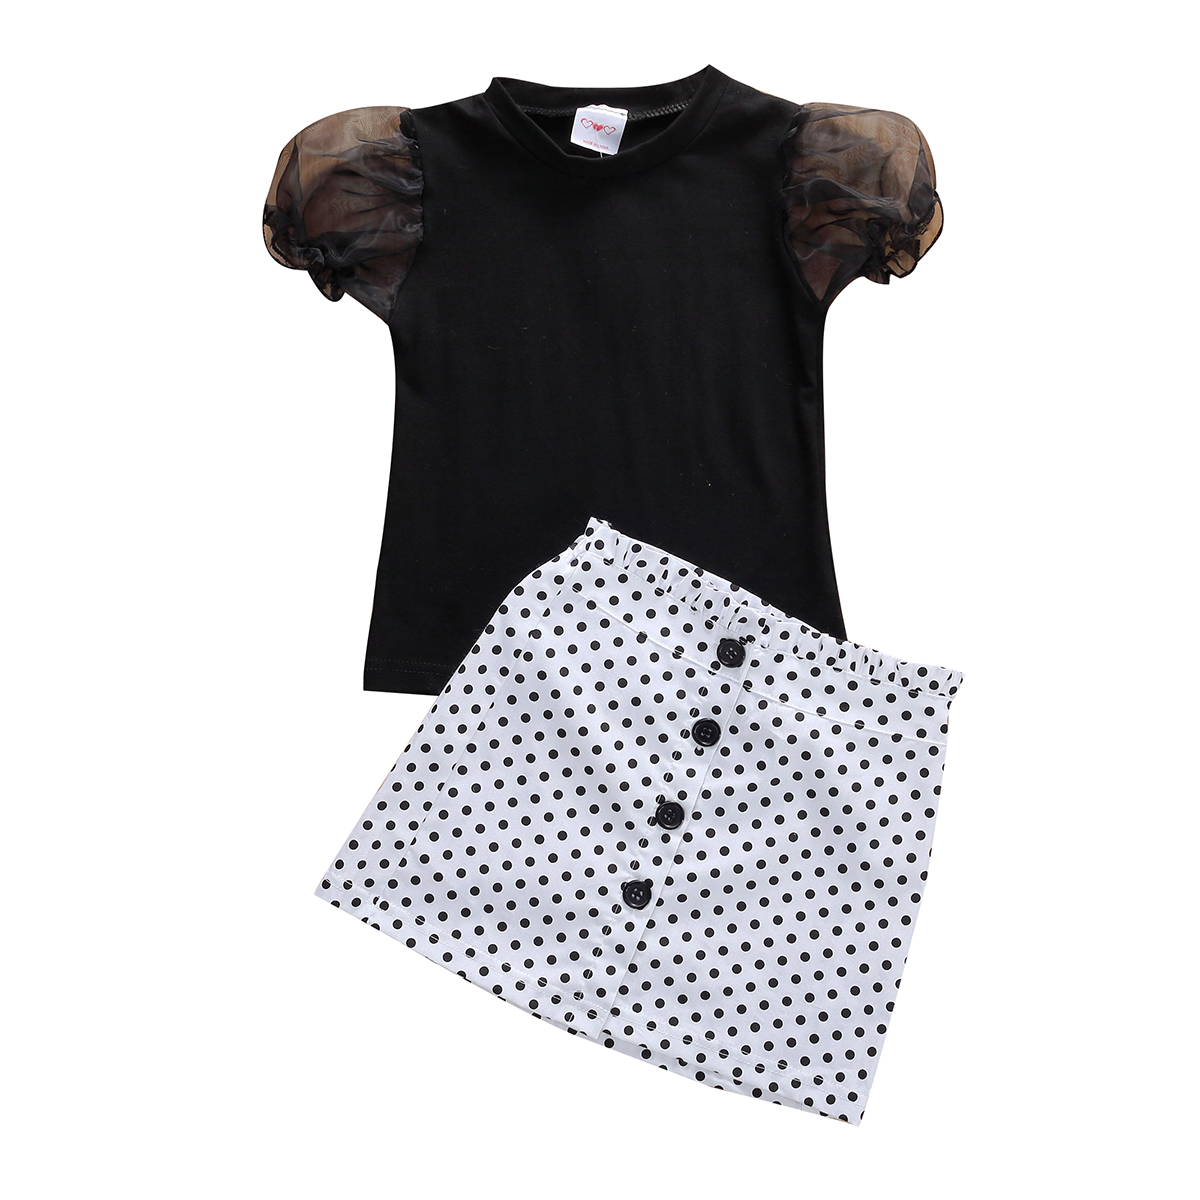 Toddler Kids Baby Girl 1T-6T Clothes Puff Sleeve Tops T-Shirt Skirt Mini Dress Outfits